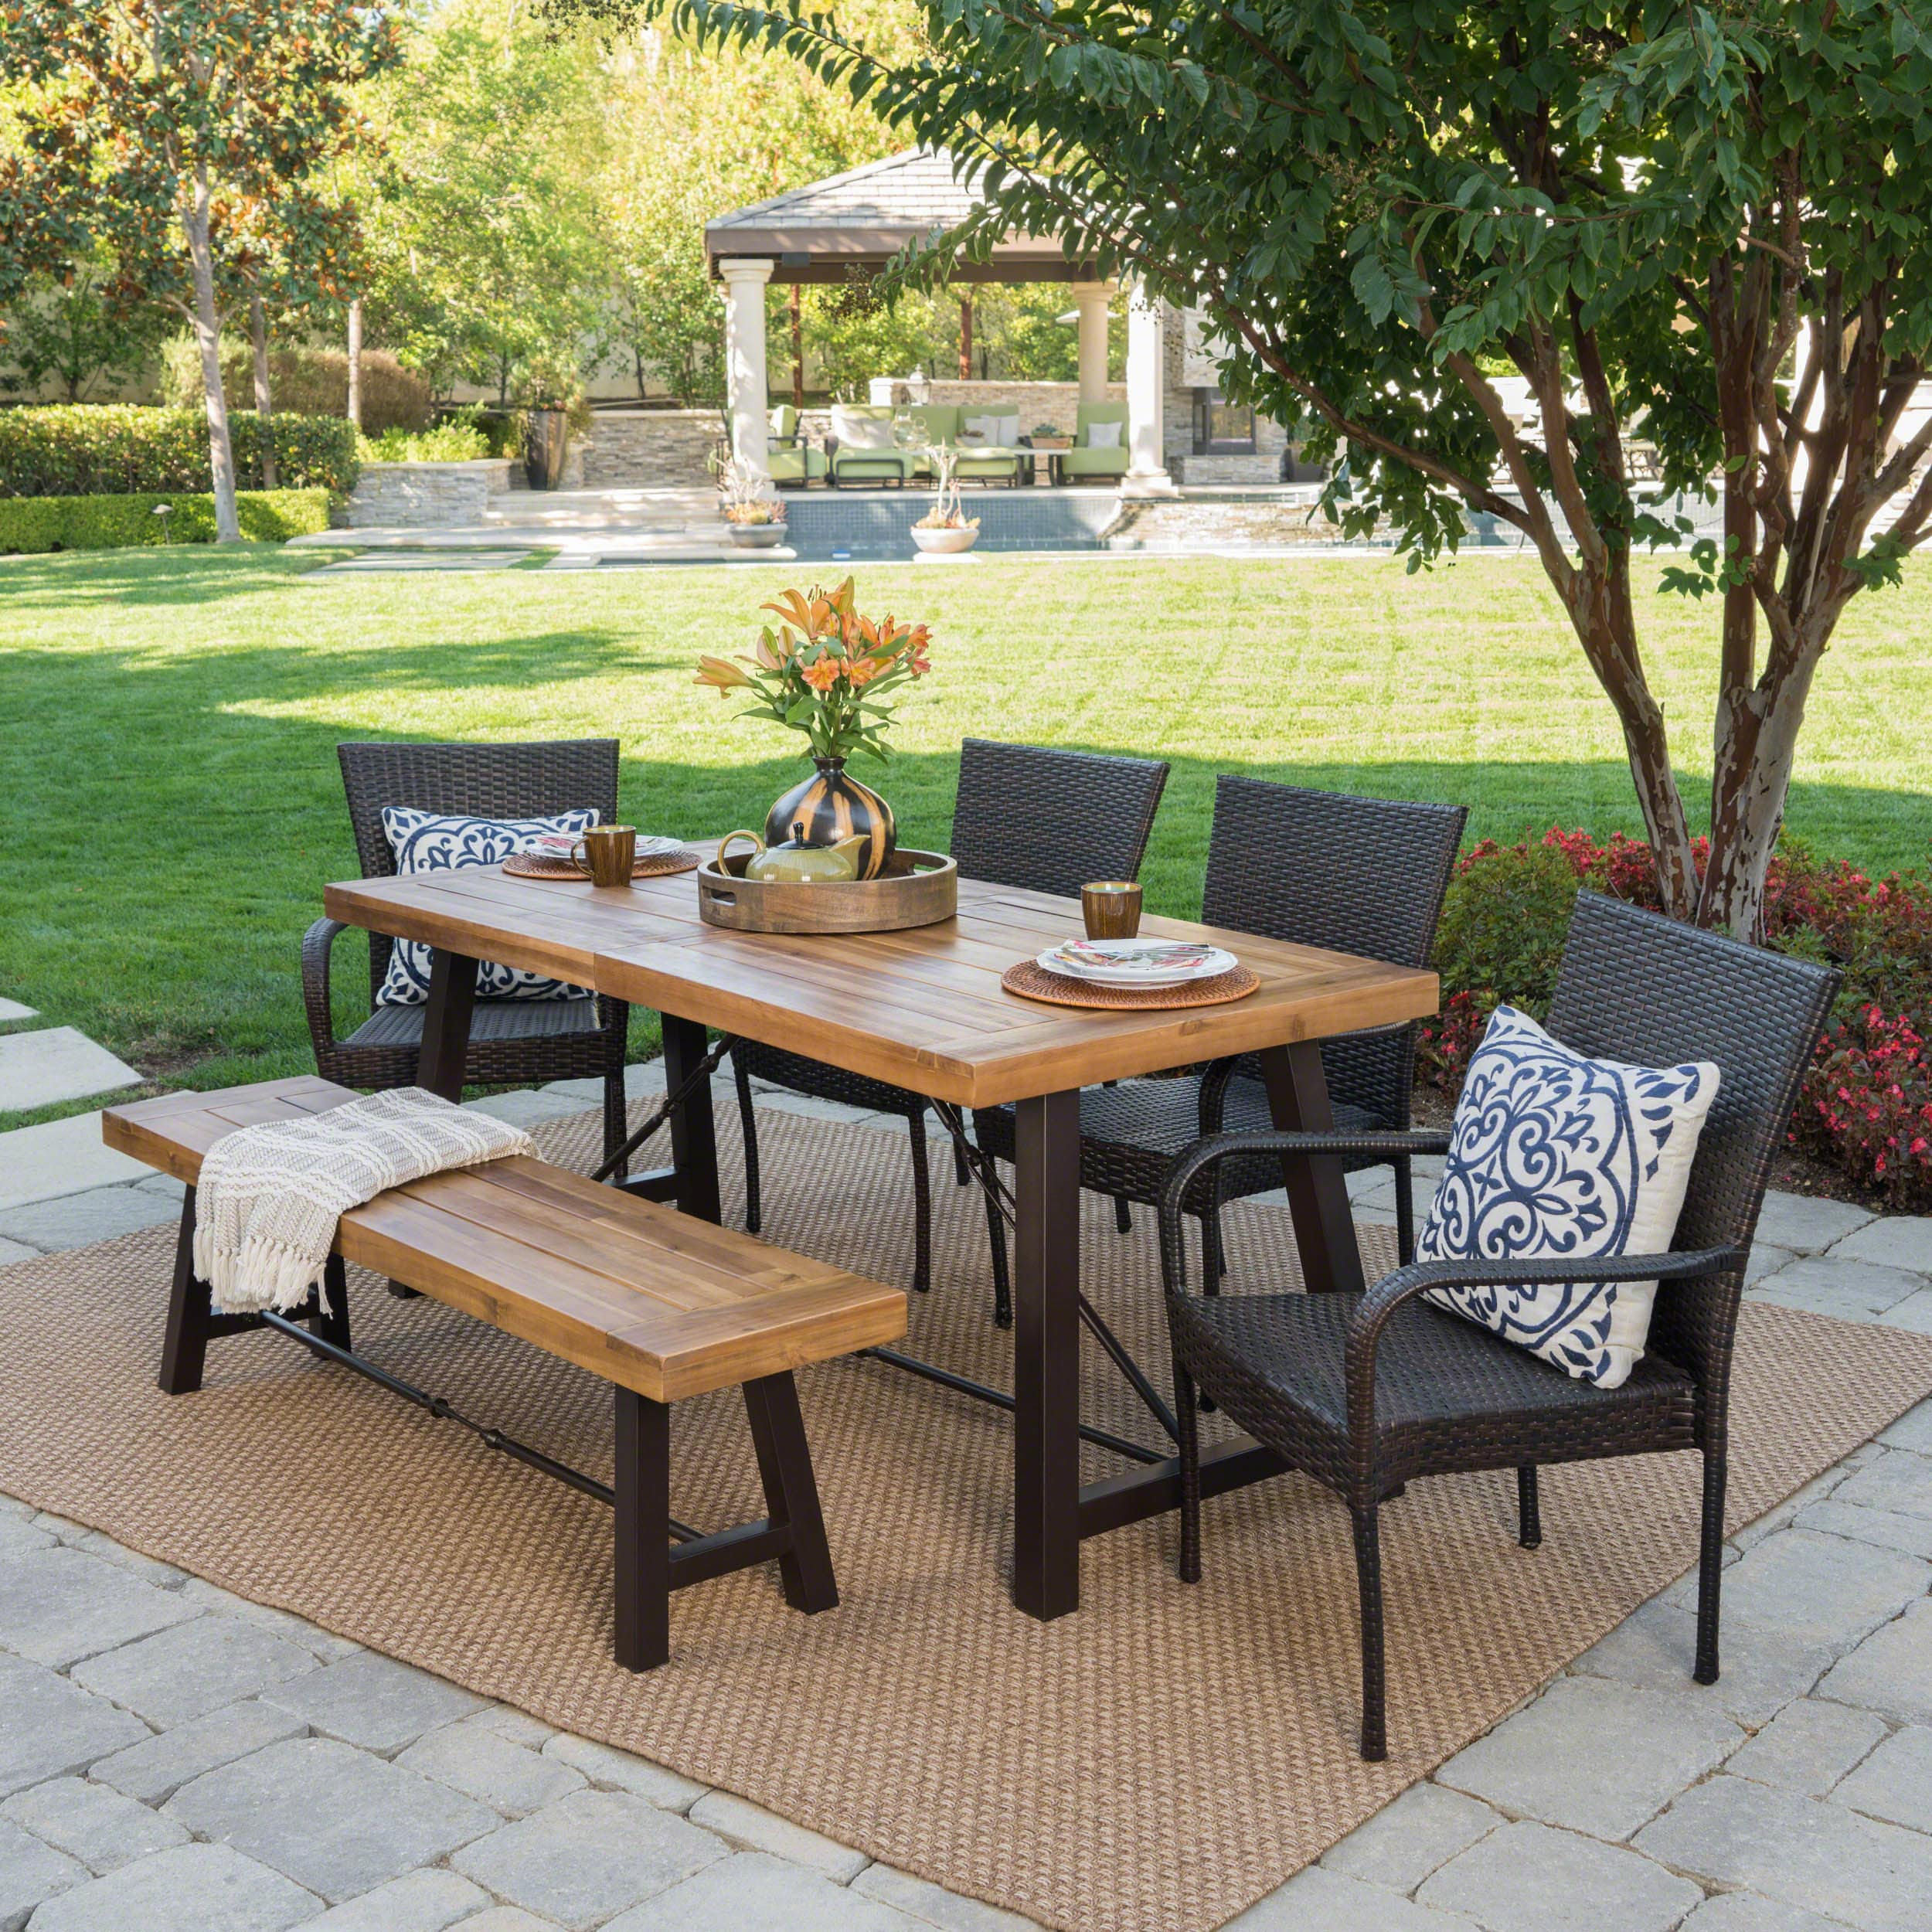 Patio Outdoor Buy Outdoor Dining Sets Online At Overstock Our Best Patio